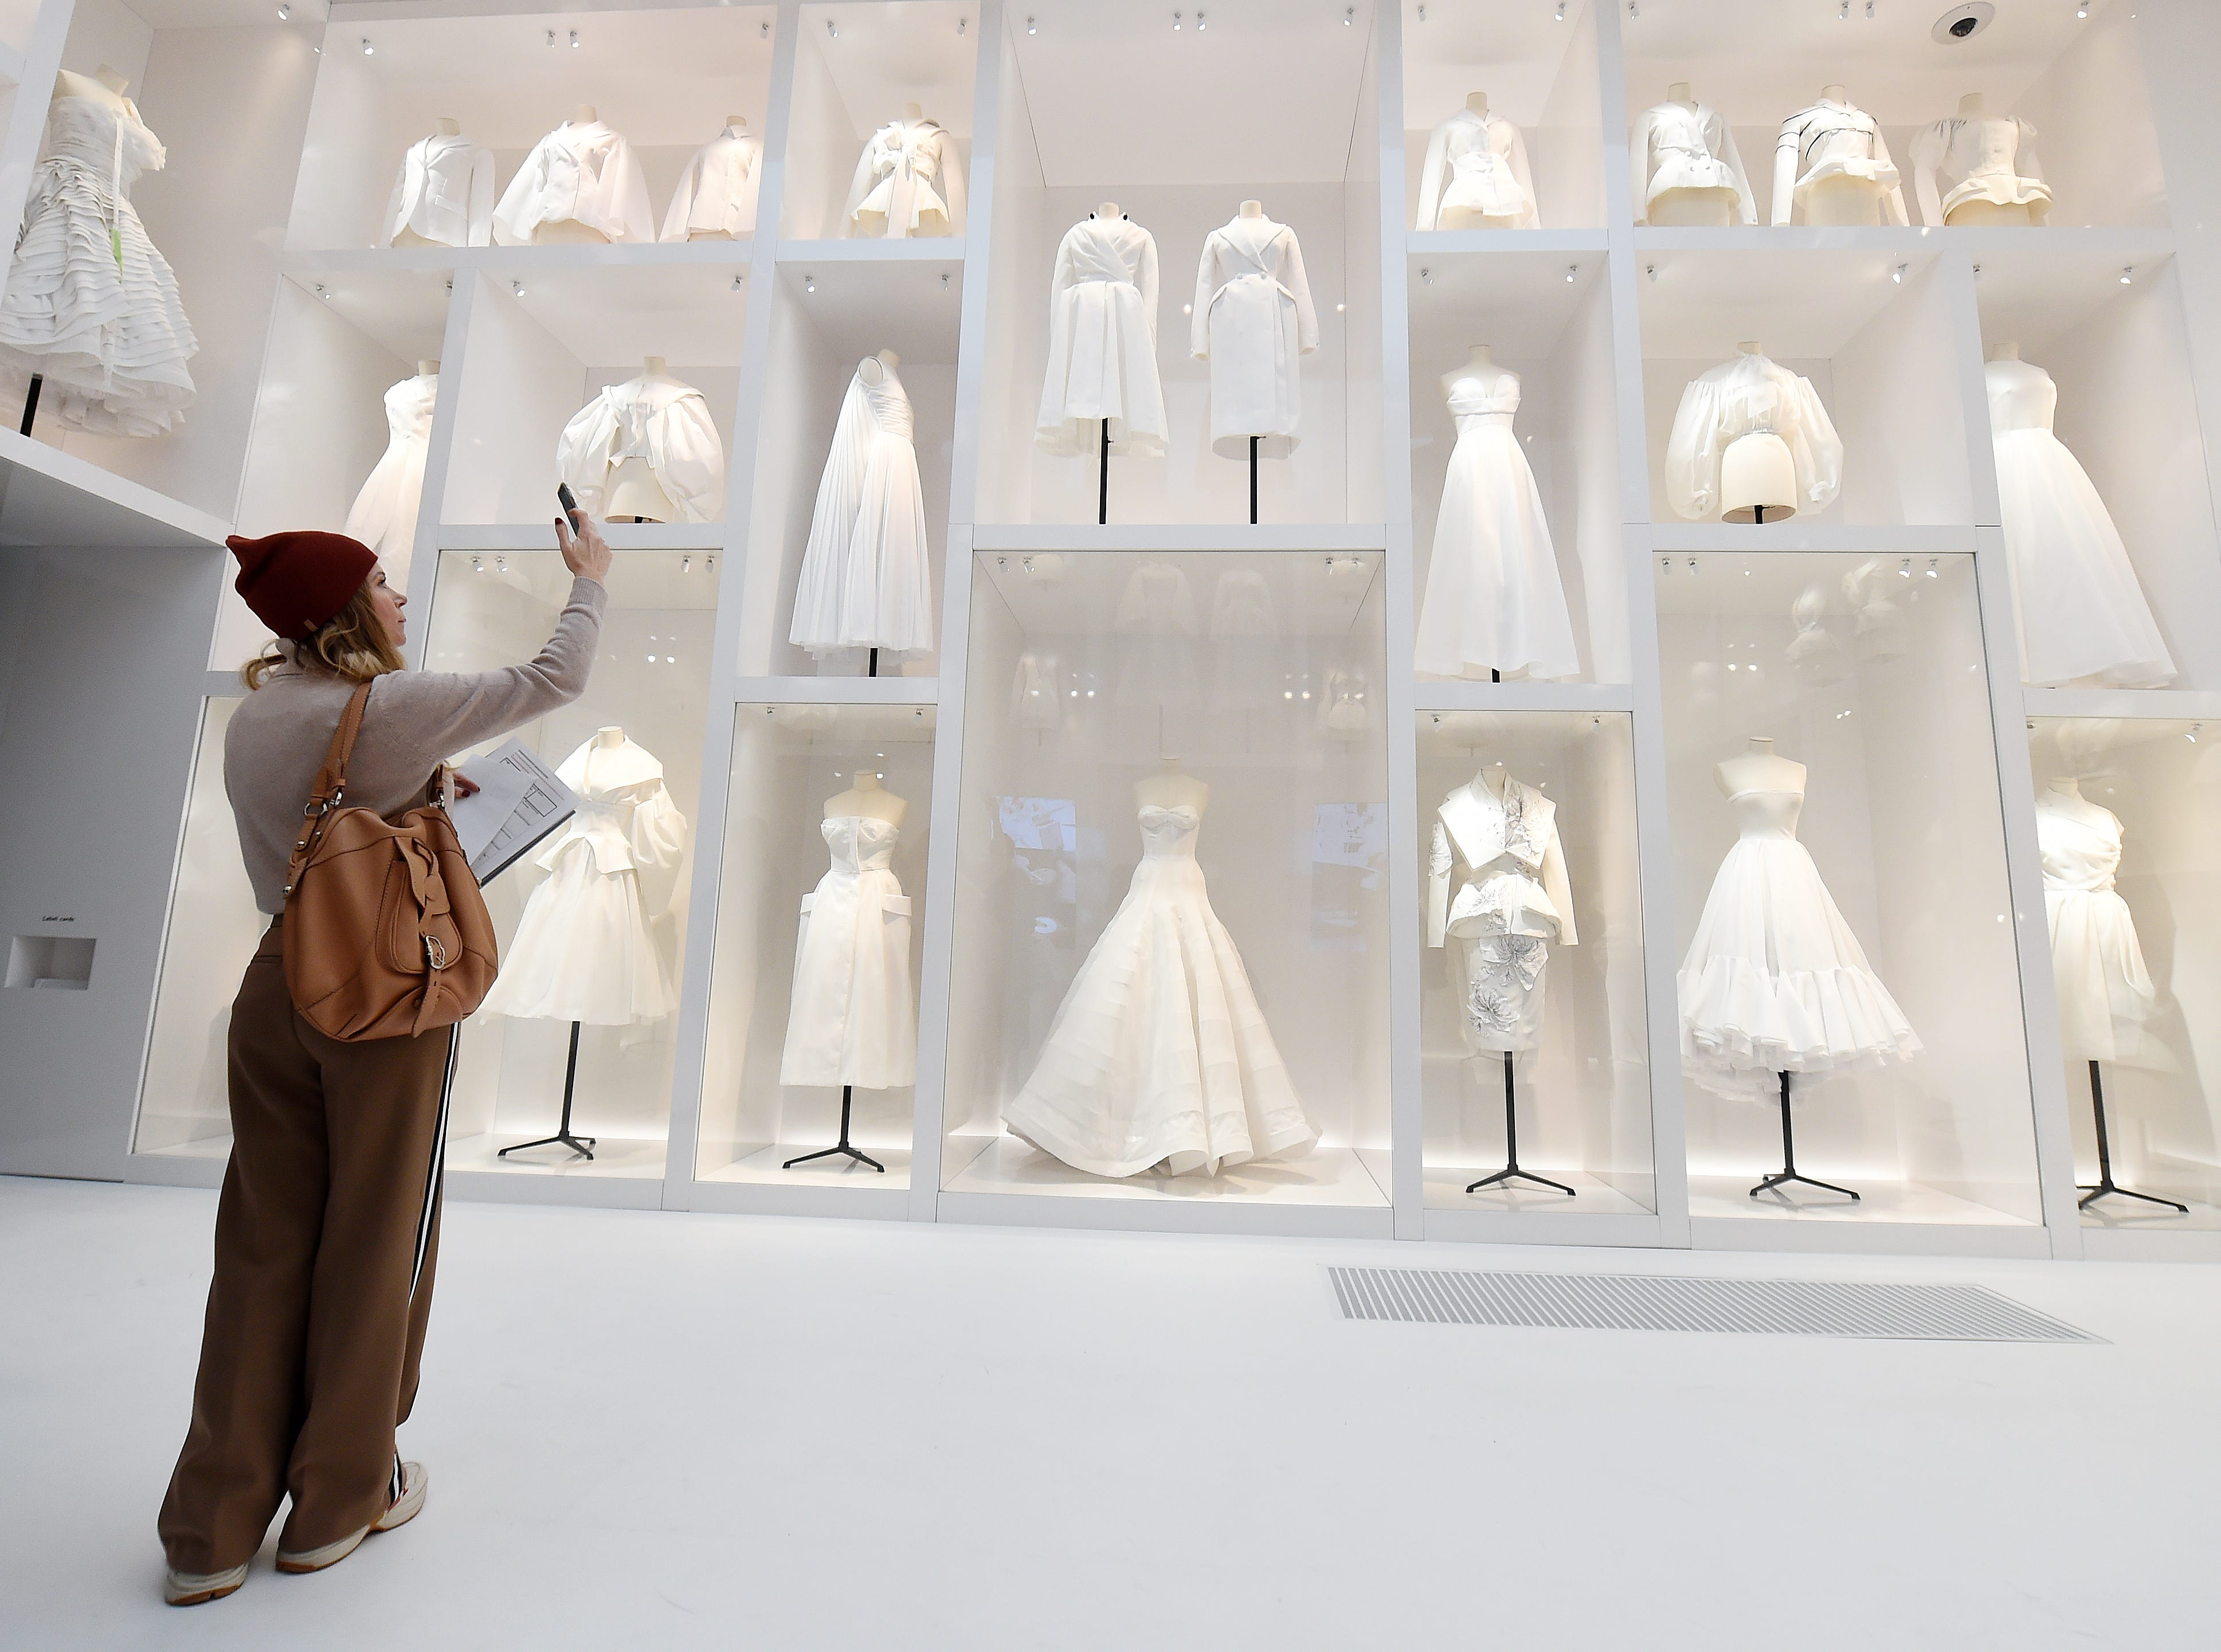 """Designer pieces are on display during the """"Christian Dior: Designer of Dreams"""" exhibition at Victoria & Albert Museum on January 30, 2019, in London, England."""